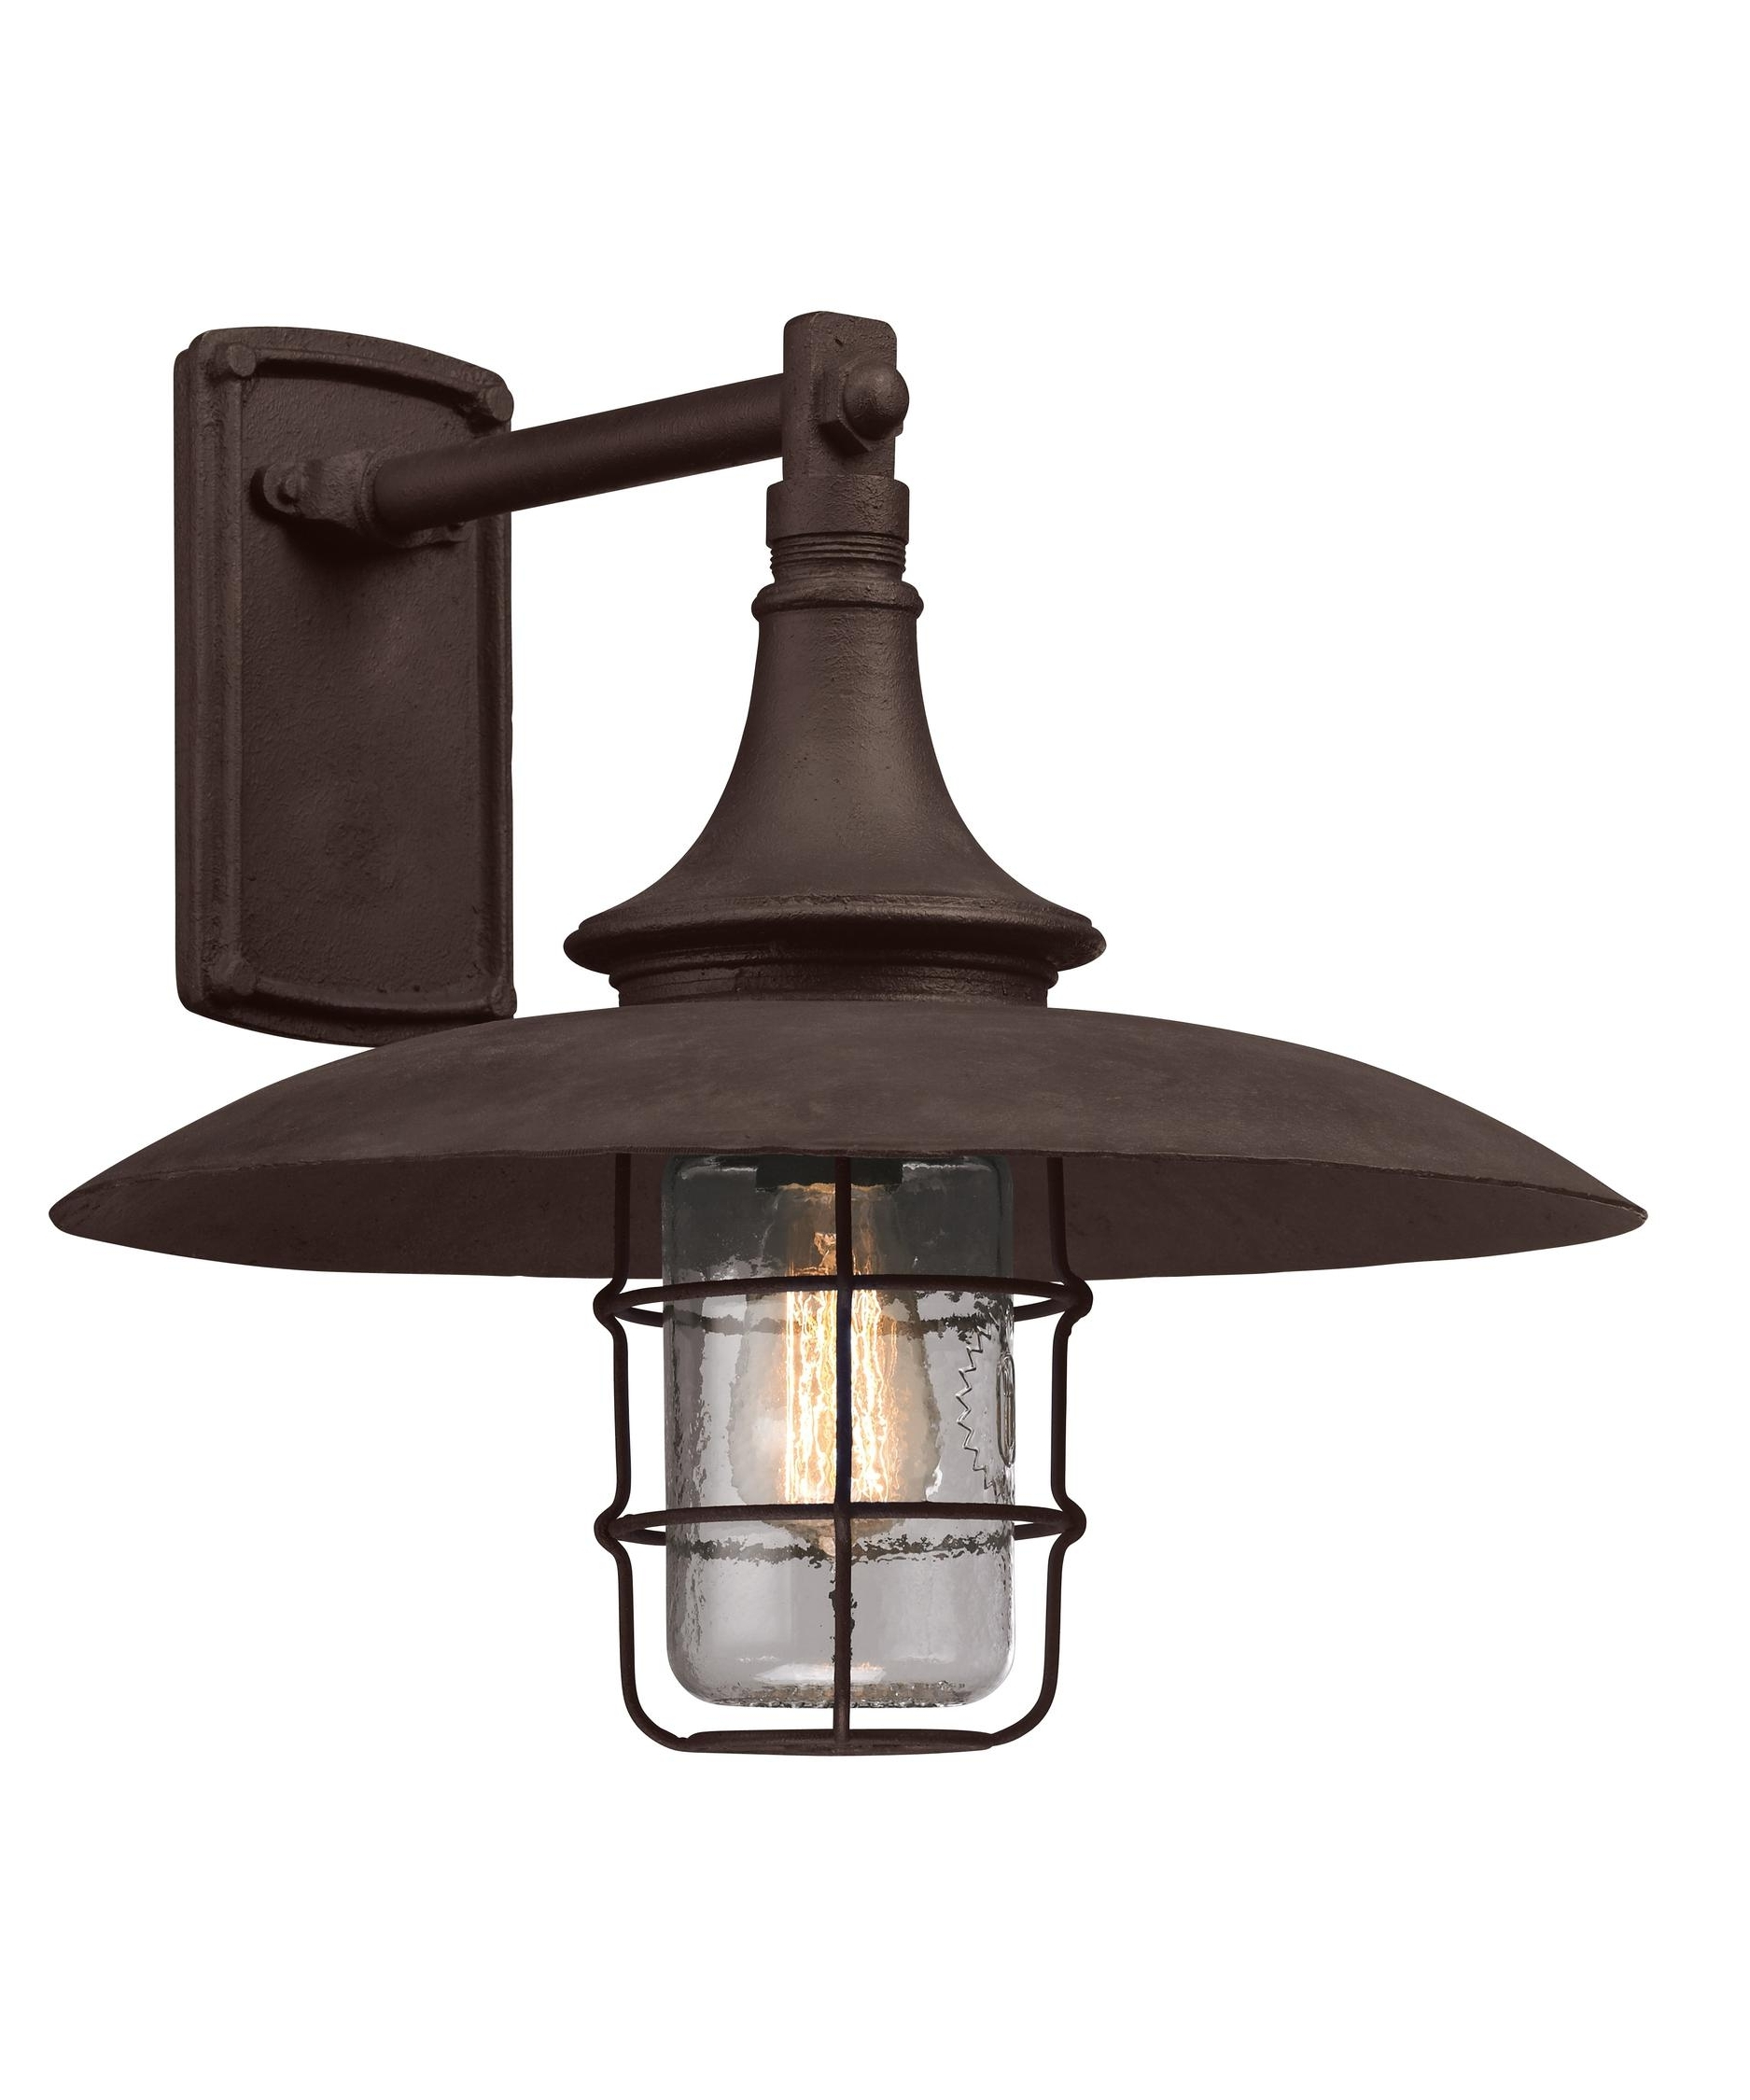 2019 Troy Lighting Outdoor Wall Sconces Pertaining To Troy Lighting B3222 Allegany 16 Inch Wide 1 Light Outdoor Wall Light (View 3 of 20)